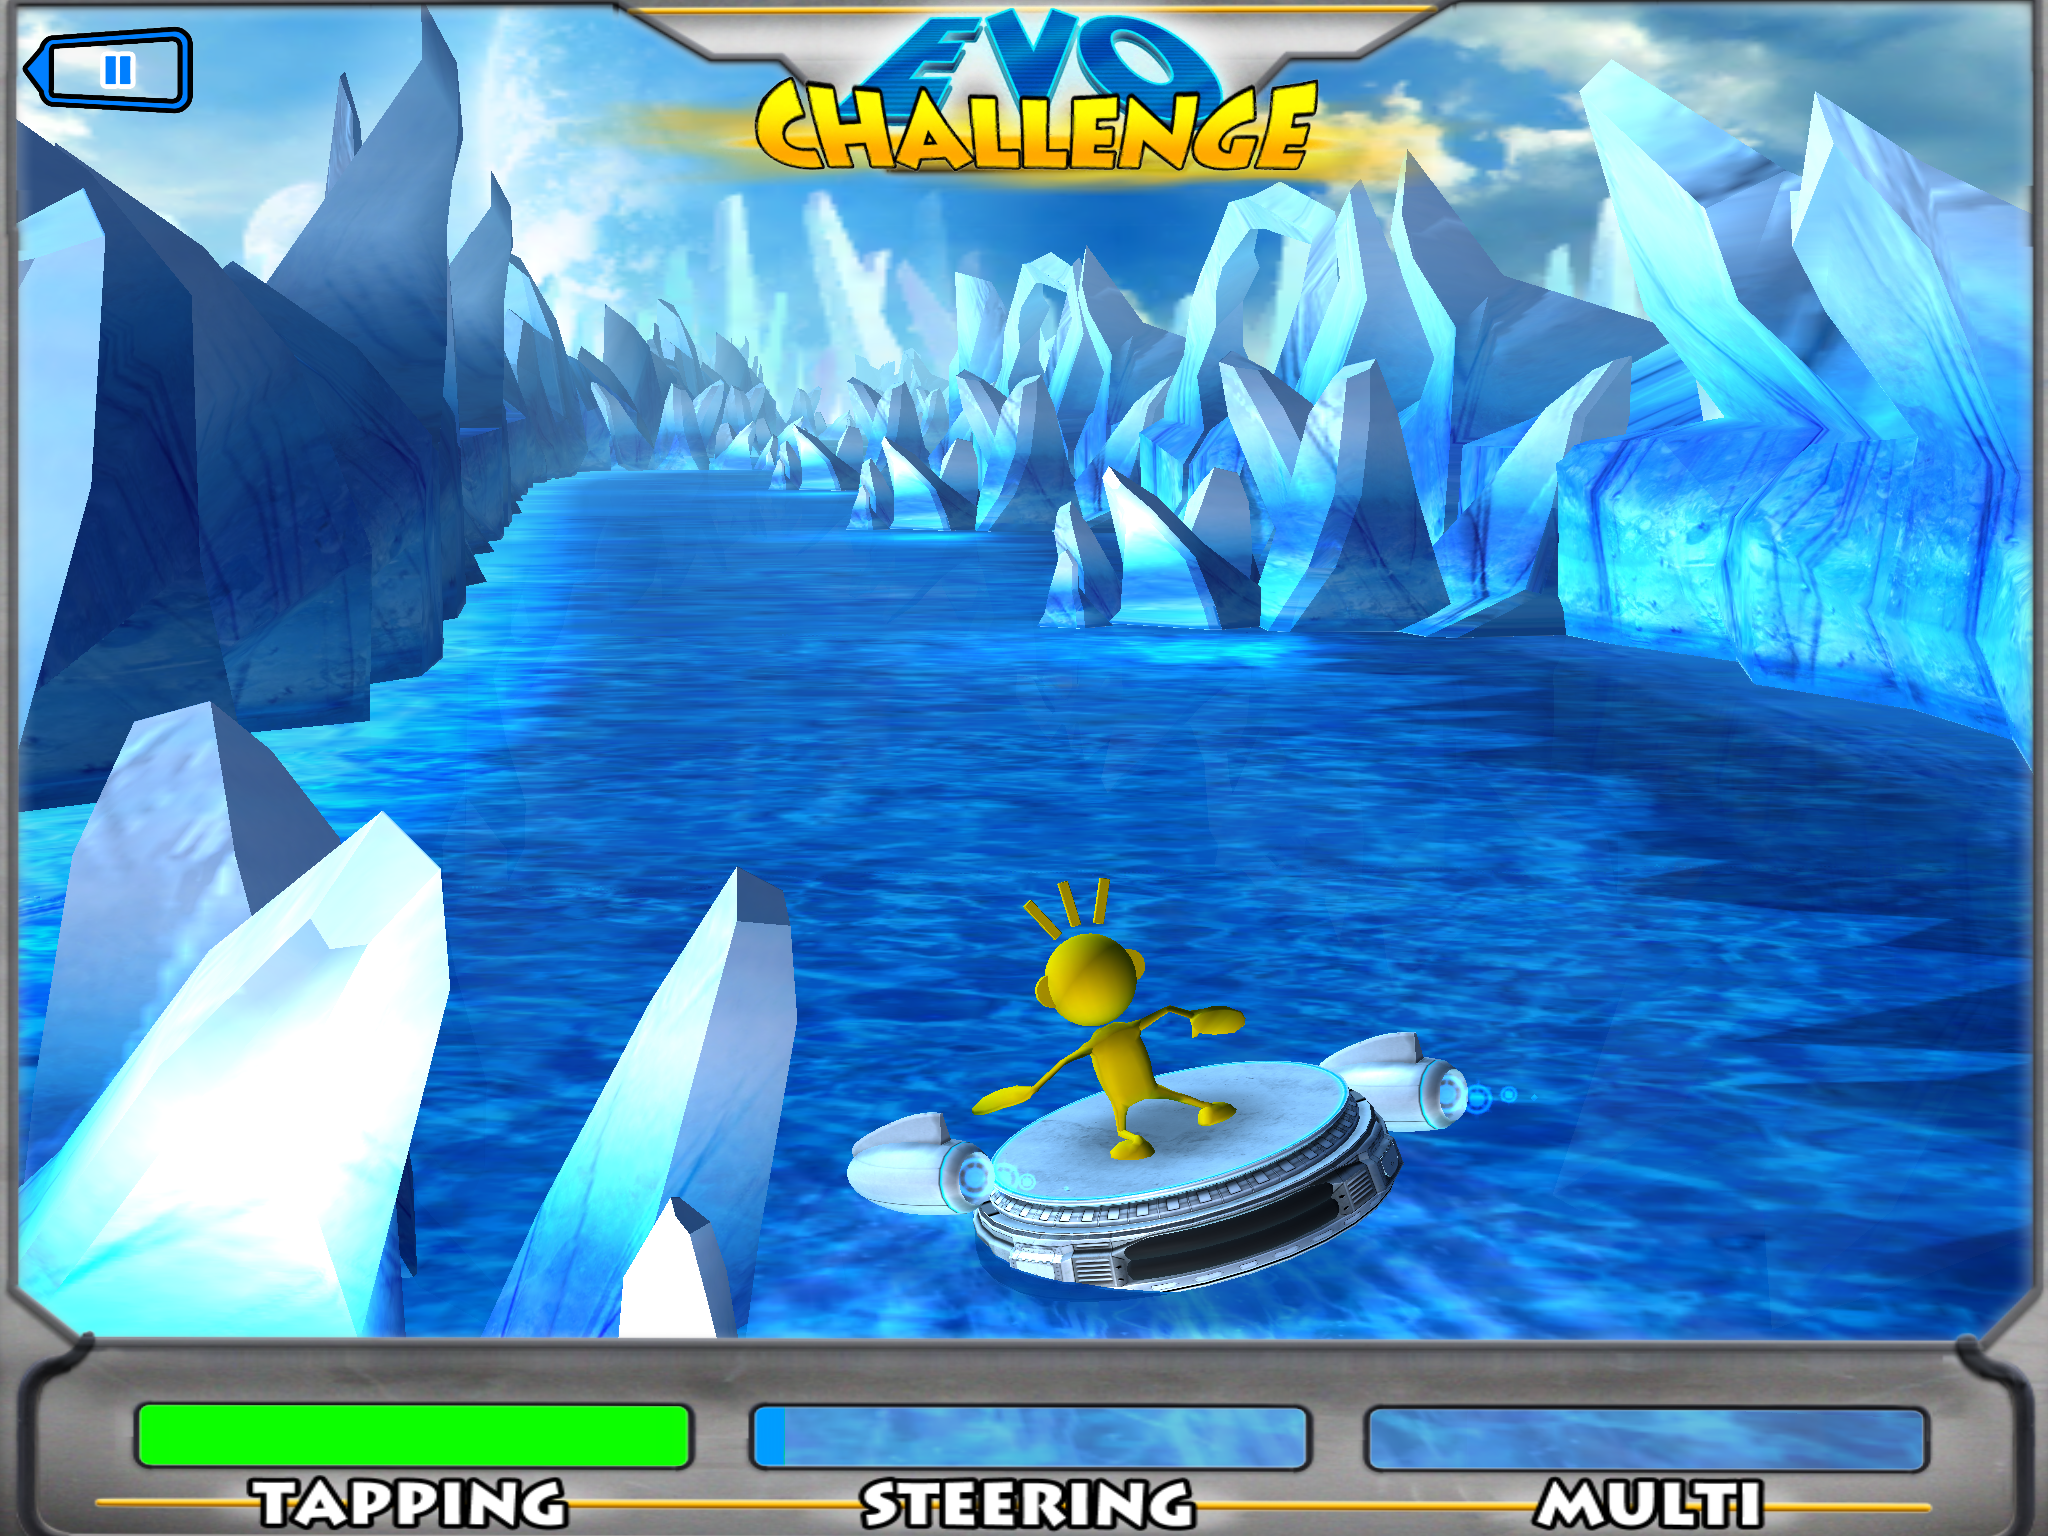 Screenshot of Project Evo showing yellow avatar floating among icebergs with the word CHALLENGE at the top and the words TAPPING, STEERING, and MULTI at the bottom